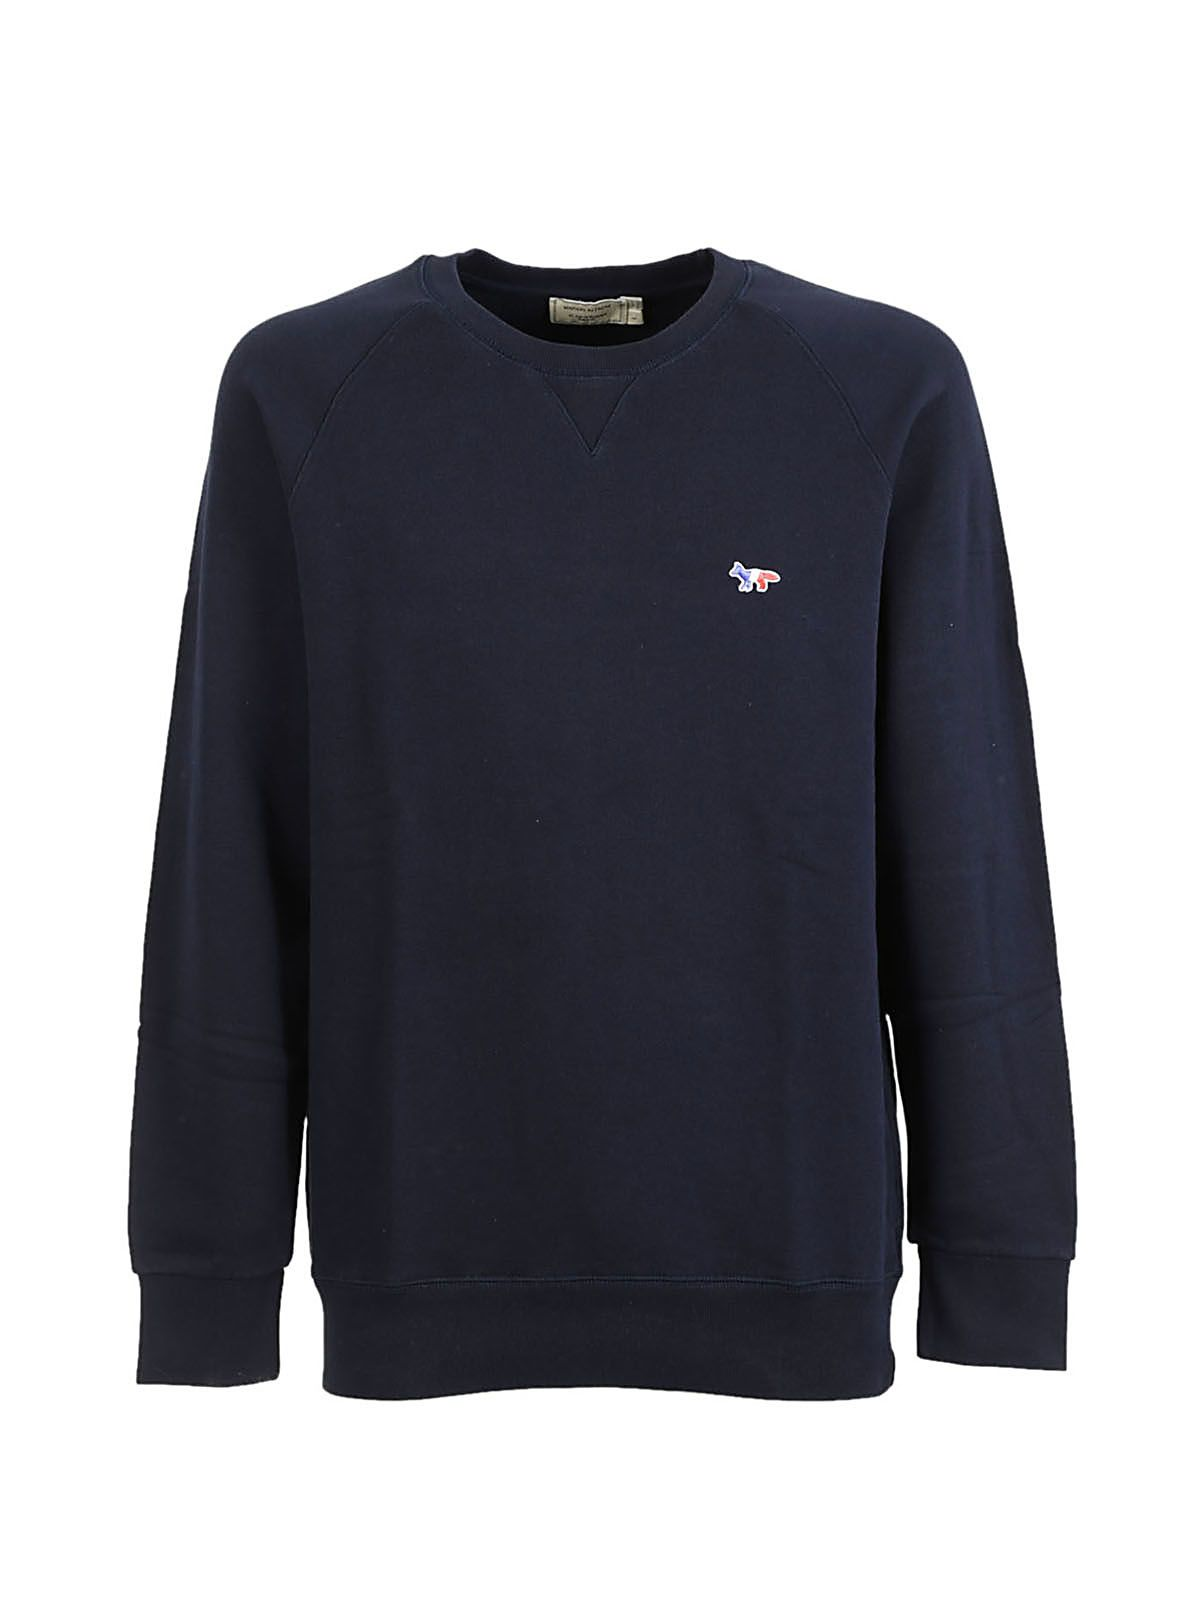 Maison Kitsun? Chest Patch Sweatshirt